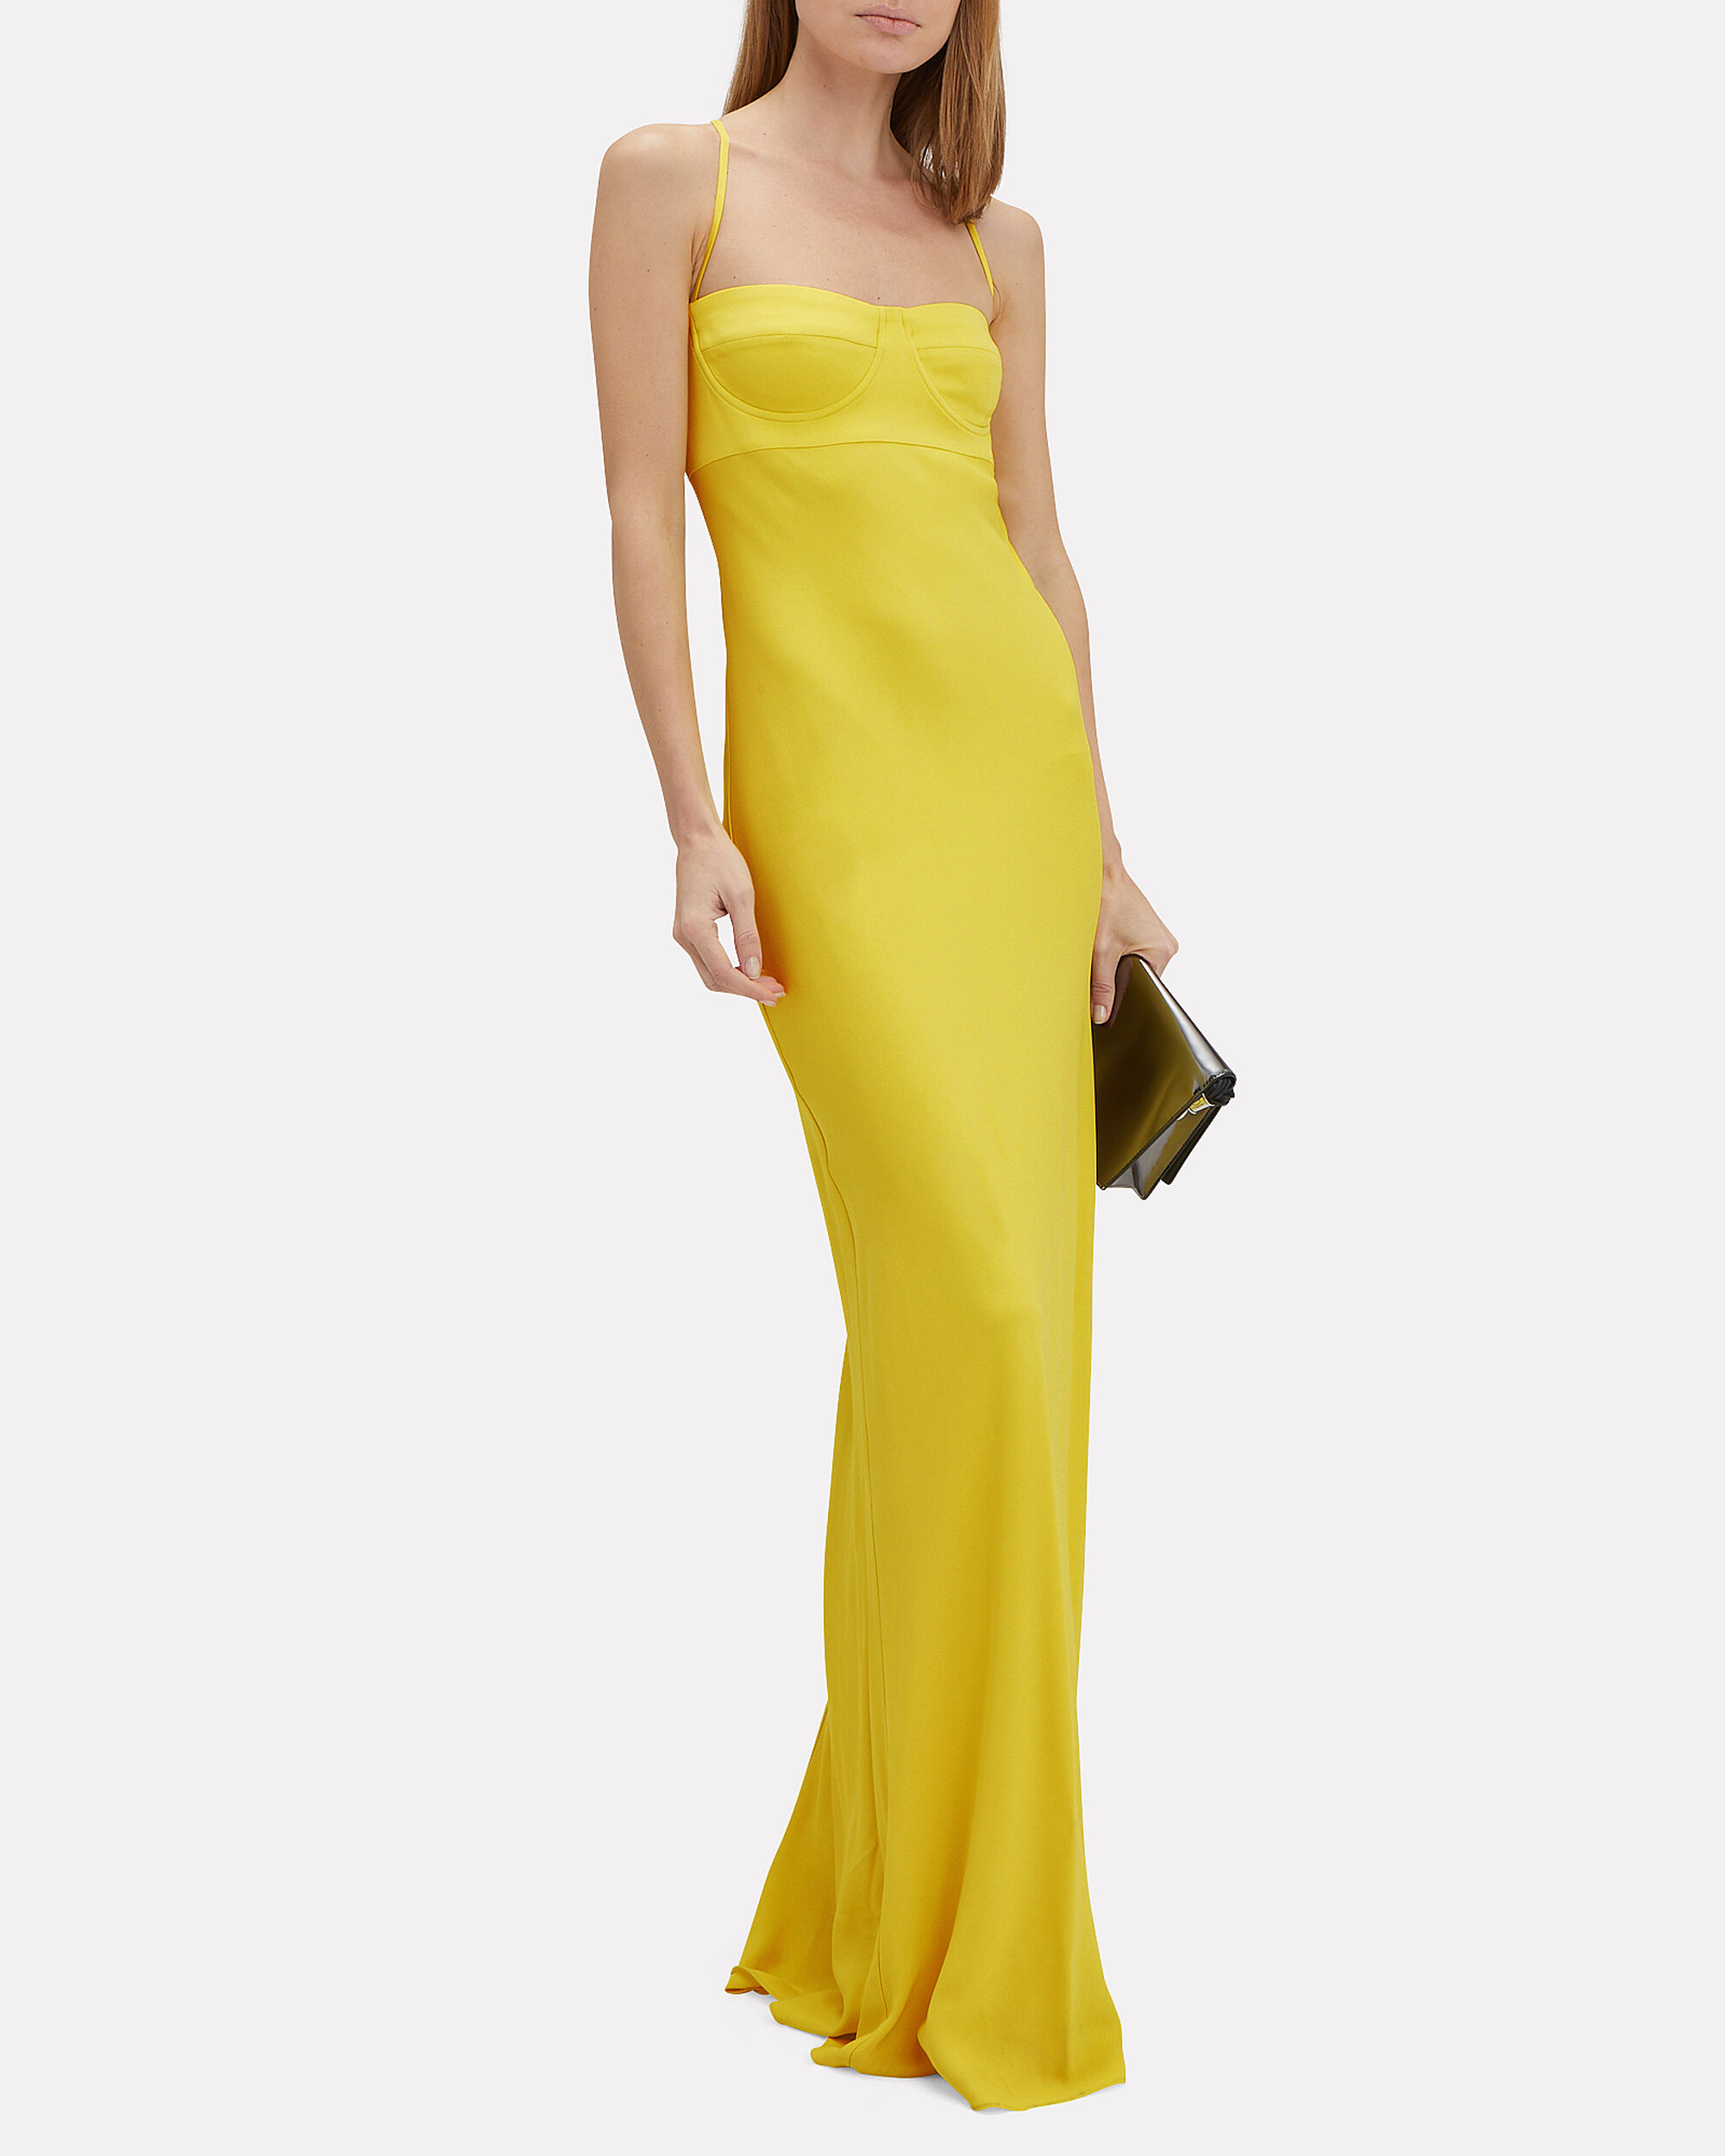 Viscose Crepe Suiting Bustier Gown, YELLOW, hi-res